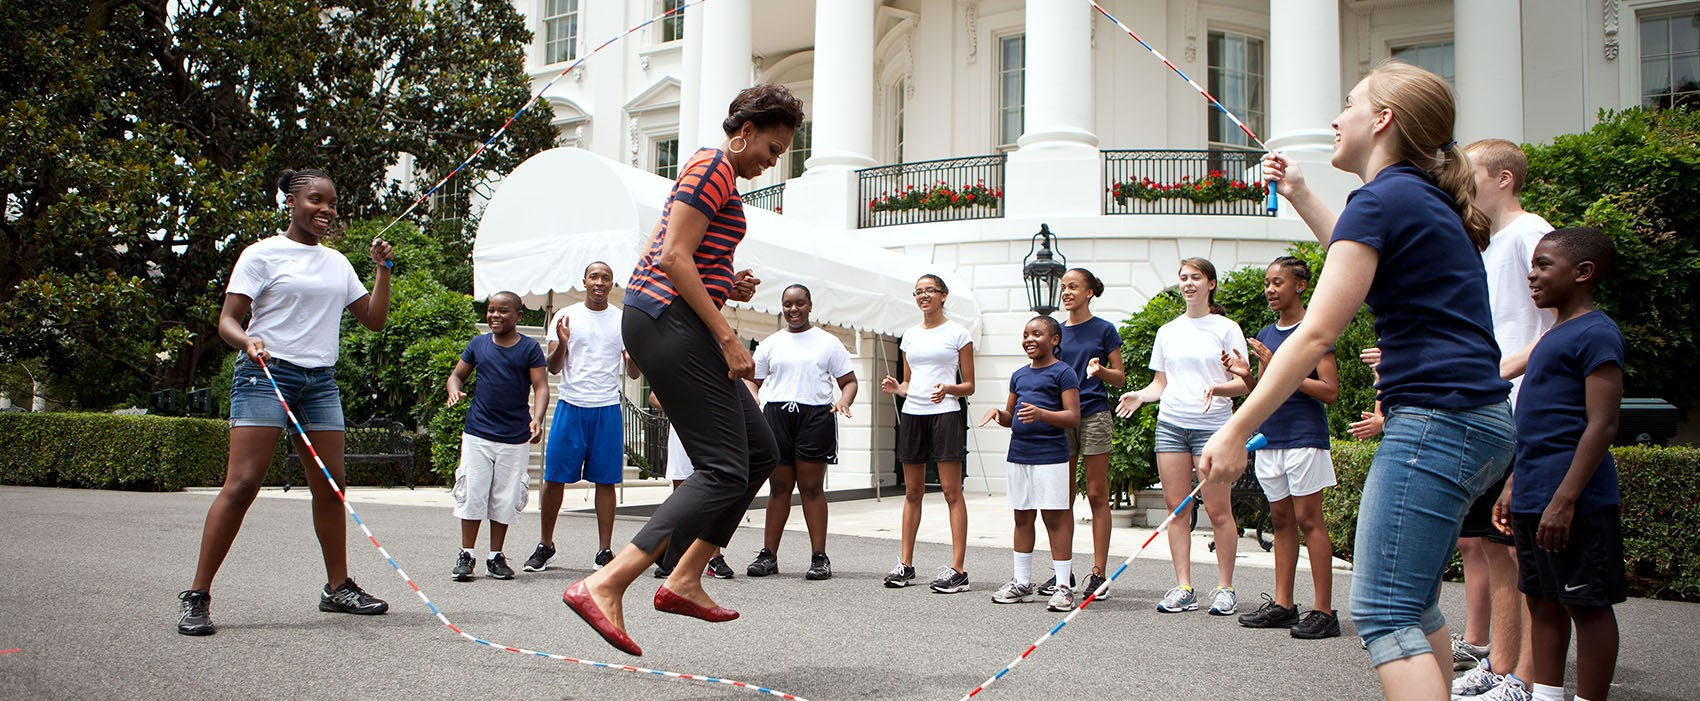 First Lady Michelle Obama and kids double-dutch jump rope during a taping for the Presidential Active Lifestyle Award (PALA) challenge and Nickelodeon's Worldwide Day of Play, on the South Lawn of the White House, July 15, 2011.